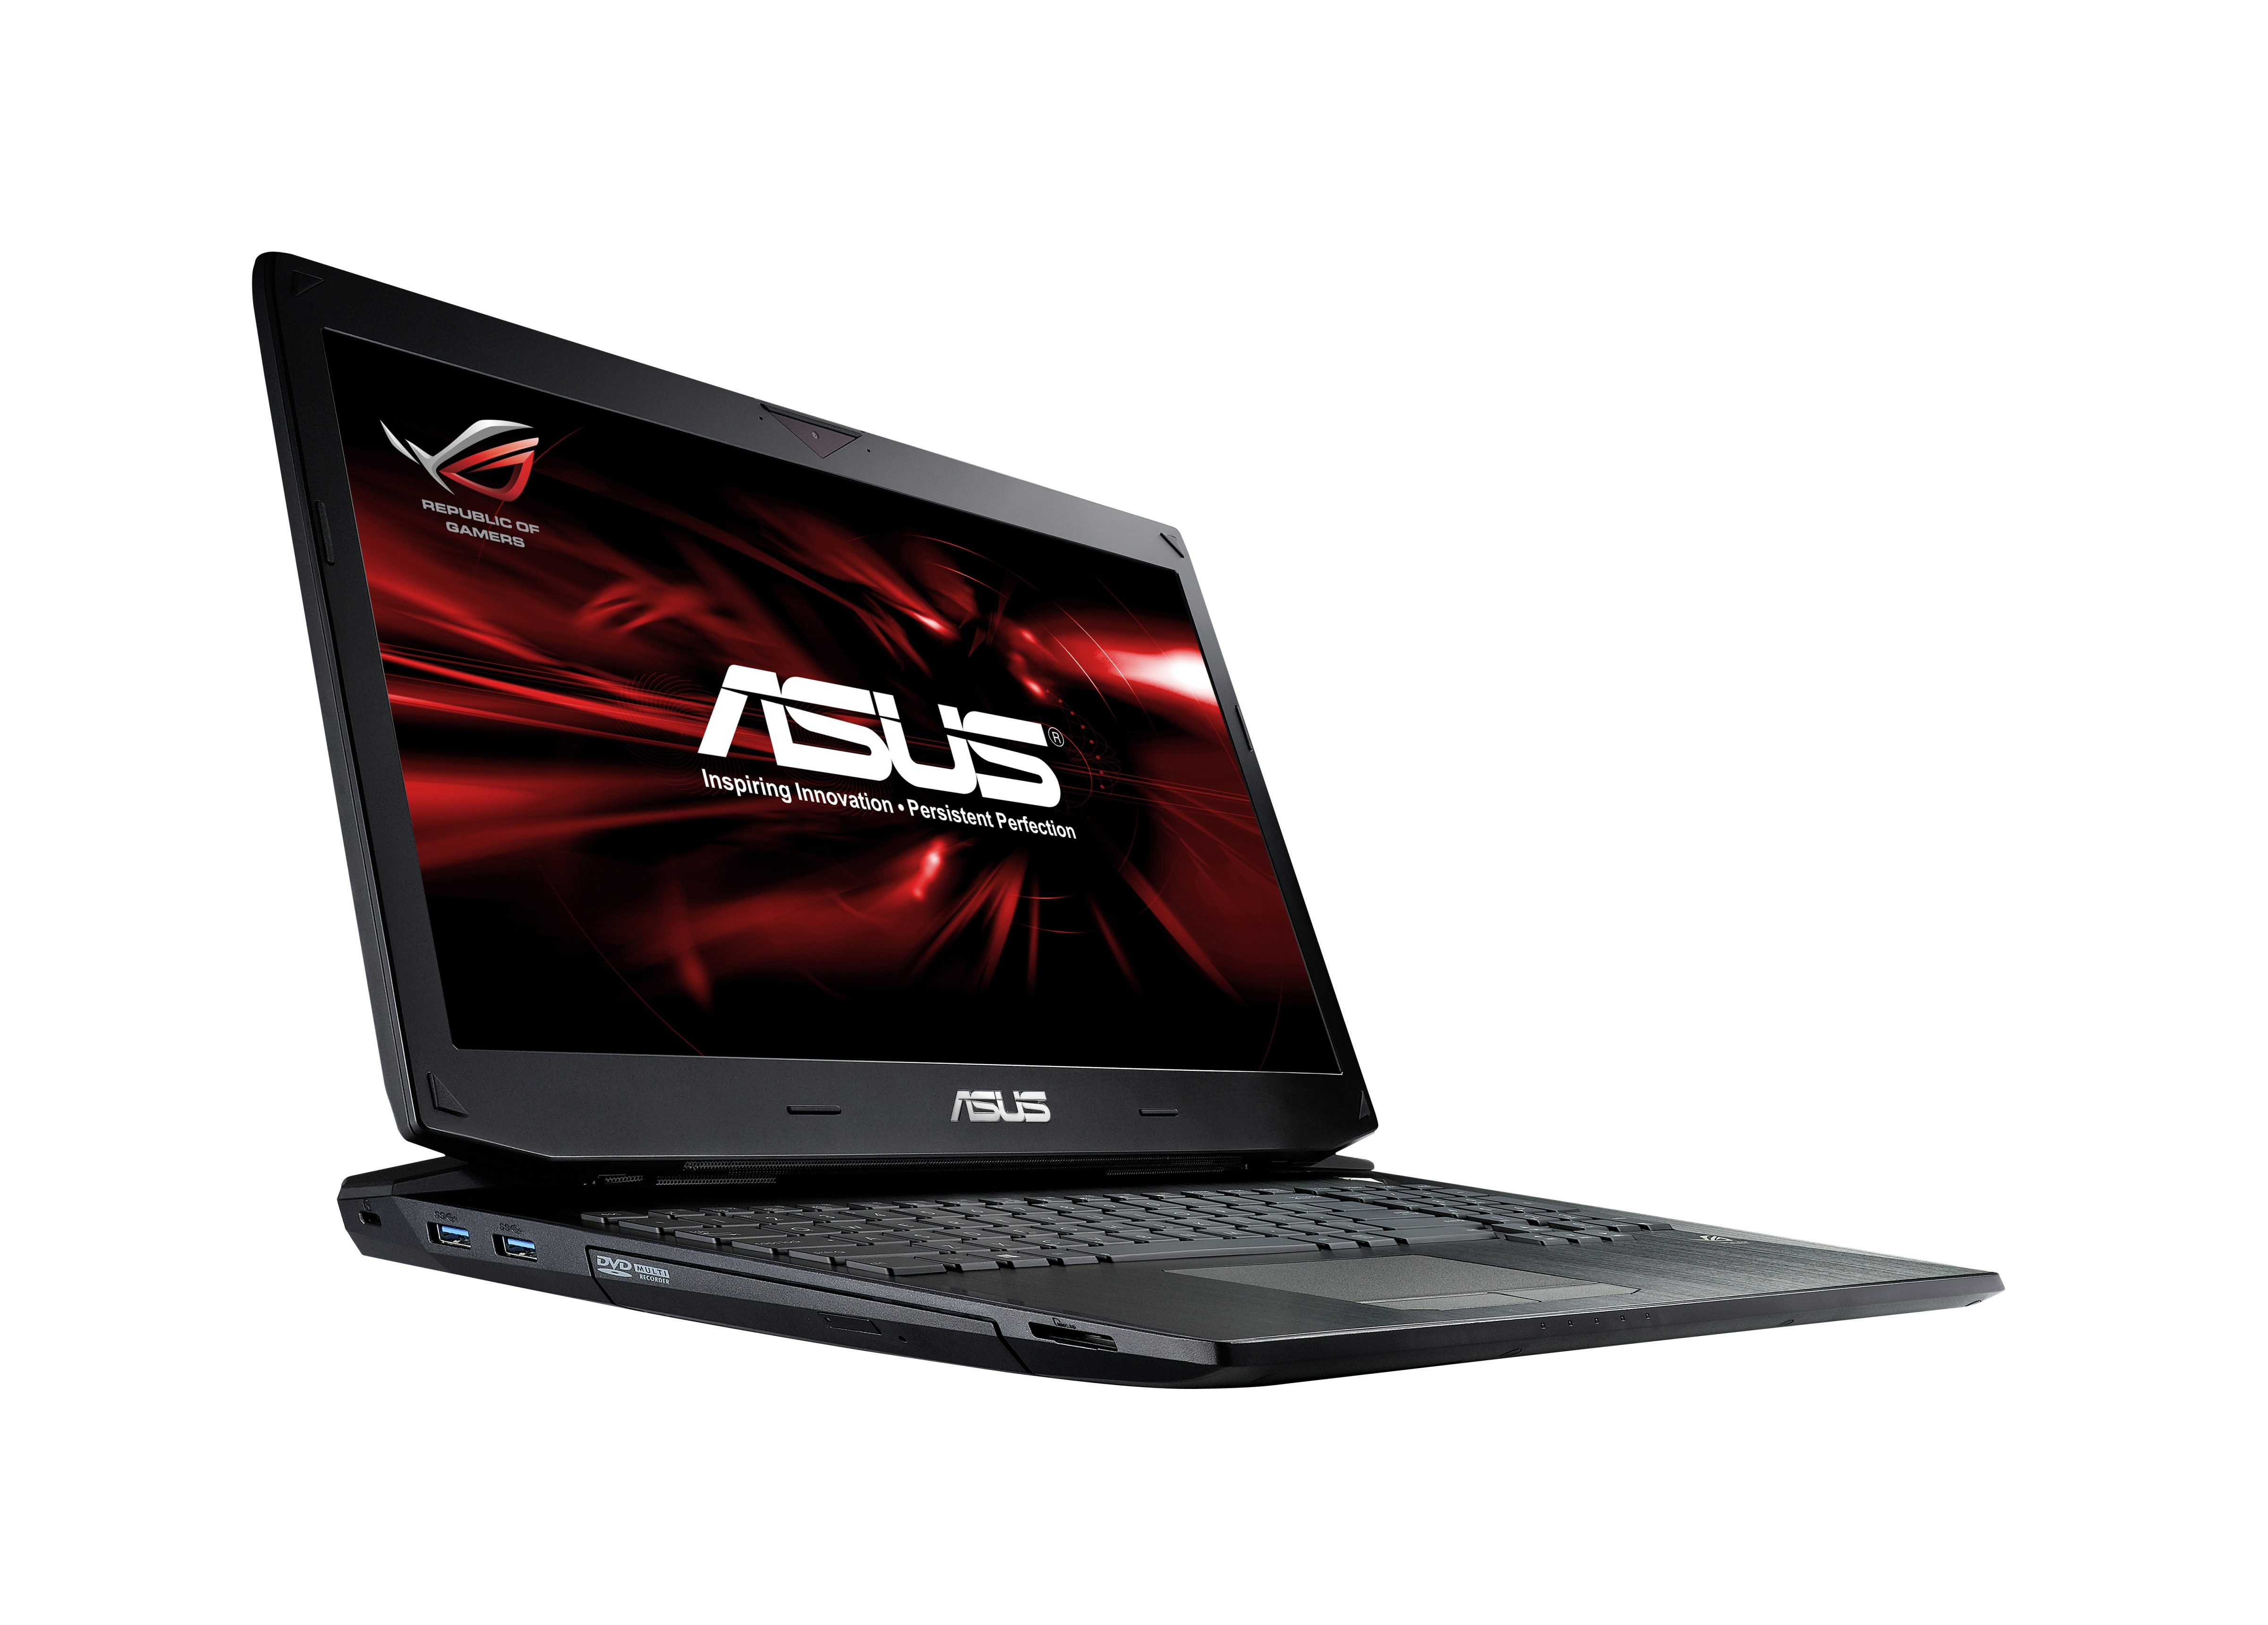 ASUS Introduces the Republic of Gamers G750 LaptopG750JWG750JXG750JHASUS Introduces the Republic of Gamers G750 LaptopRelated Articles